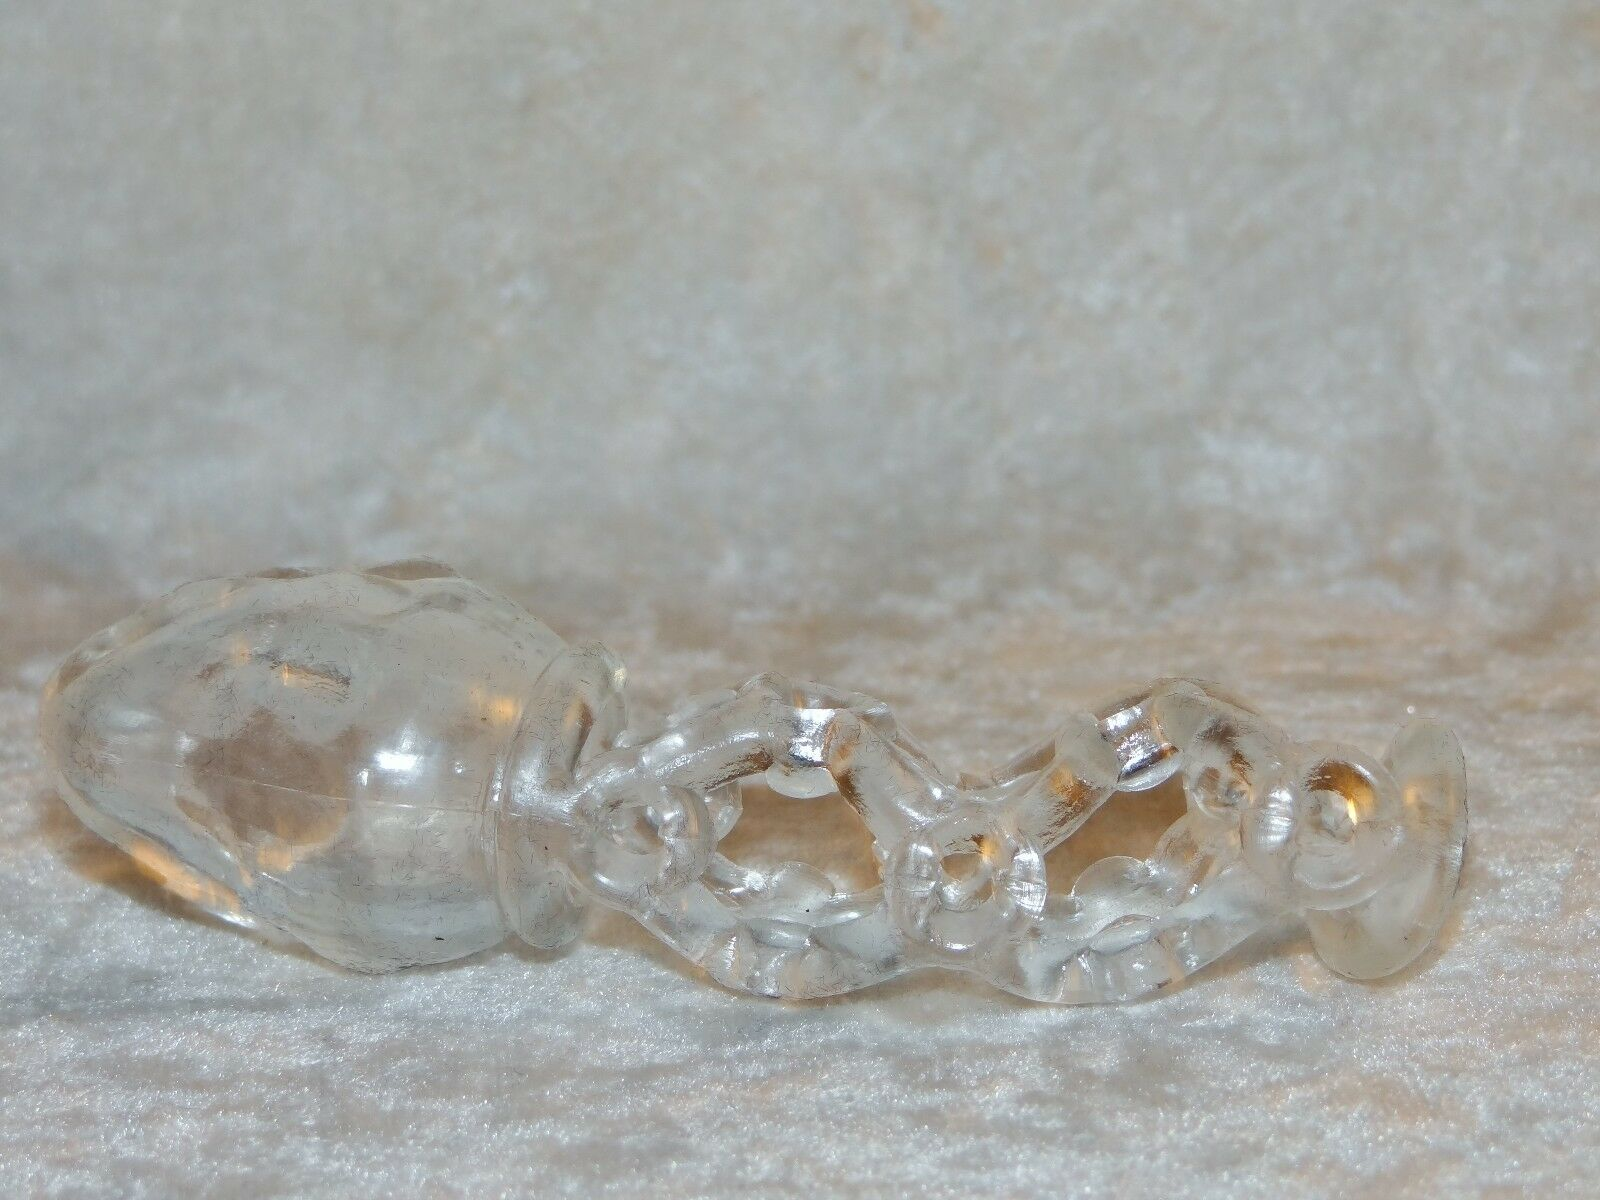 Clear Boar Head Male Web Sheath Cover Sleeve Cage Cage Cage Enhancer f2f0dc